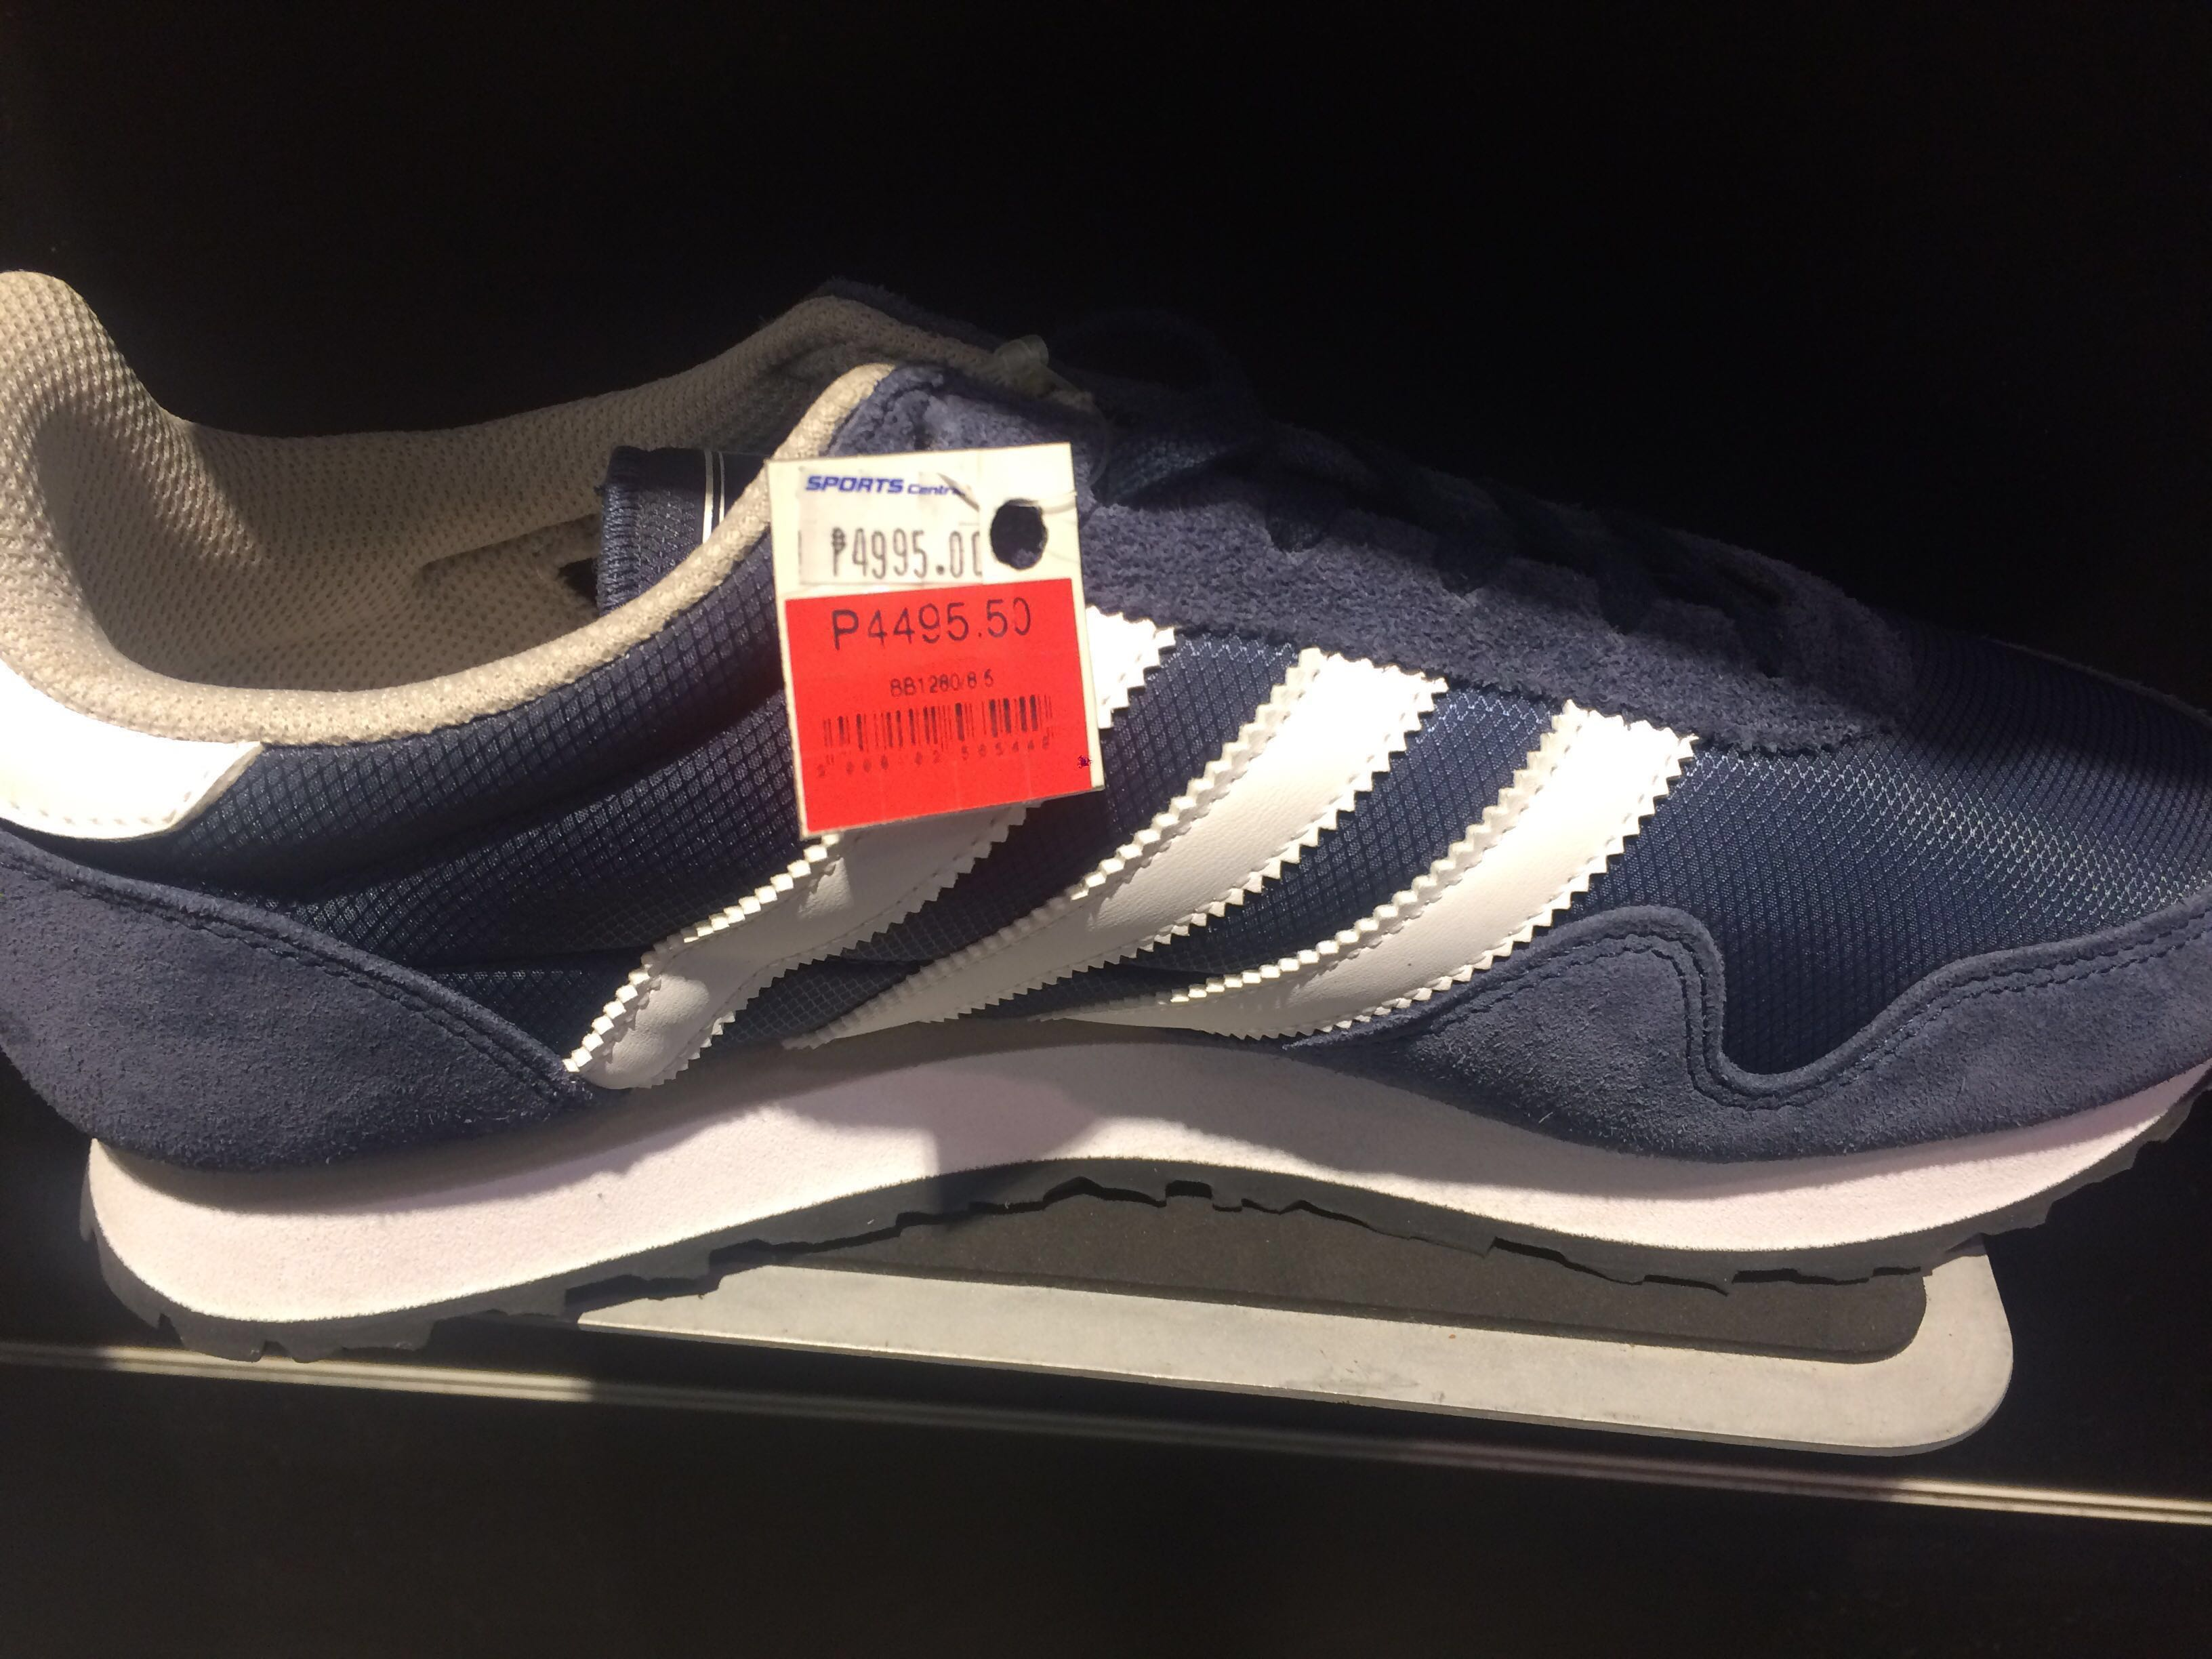 adidas haven price off 54% - www.ncccc